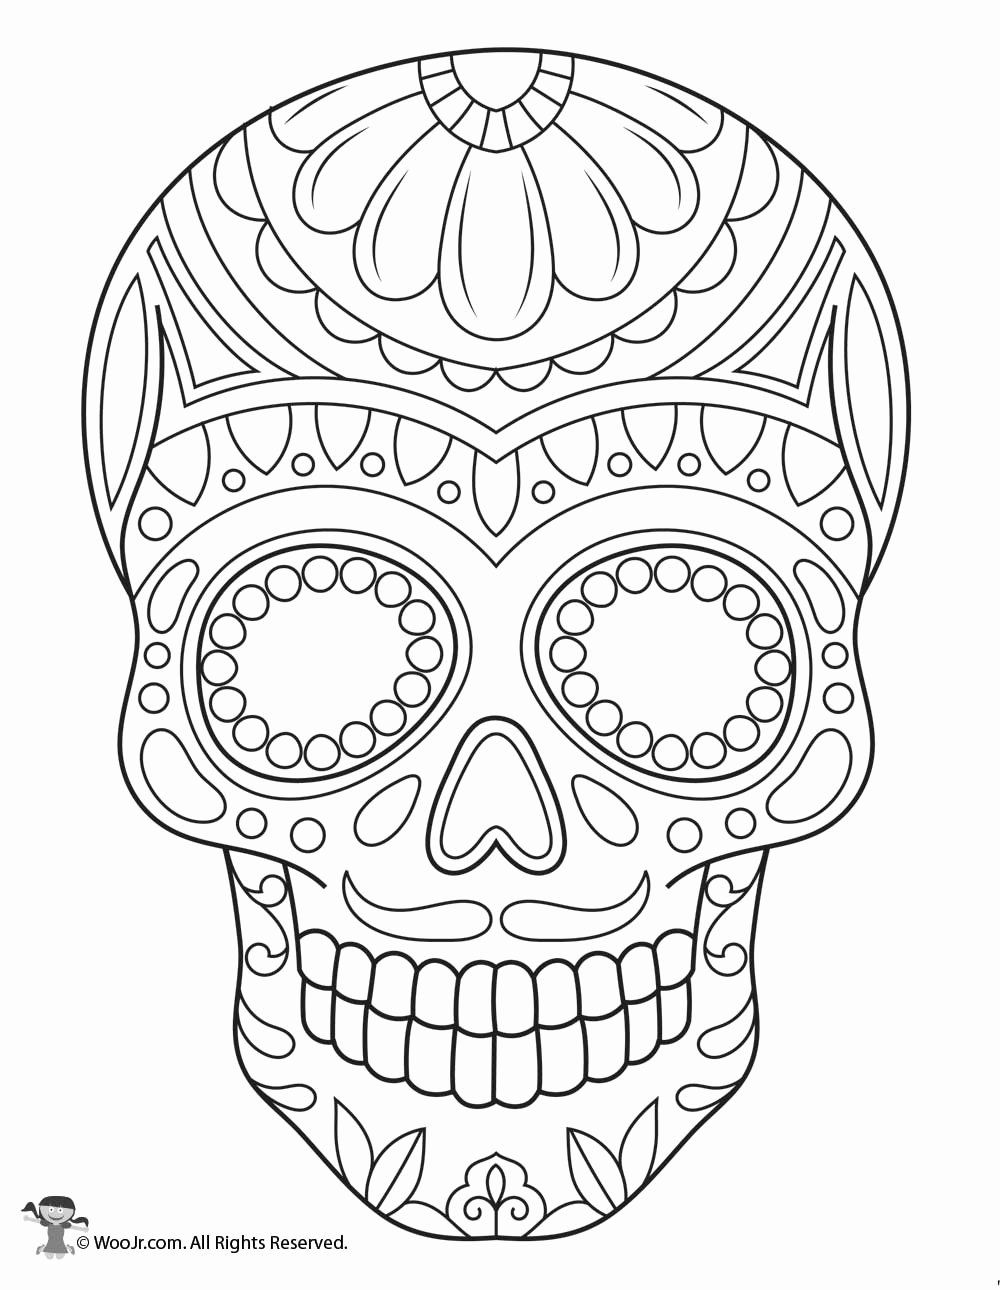 Print Skull With Guns Flowers Coloring Pages Skull Coloring Pages Heart Coloring Pages Free Coloring Pages